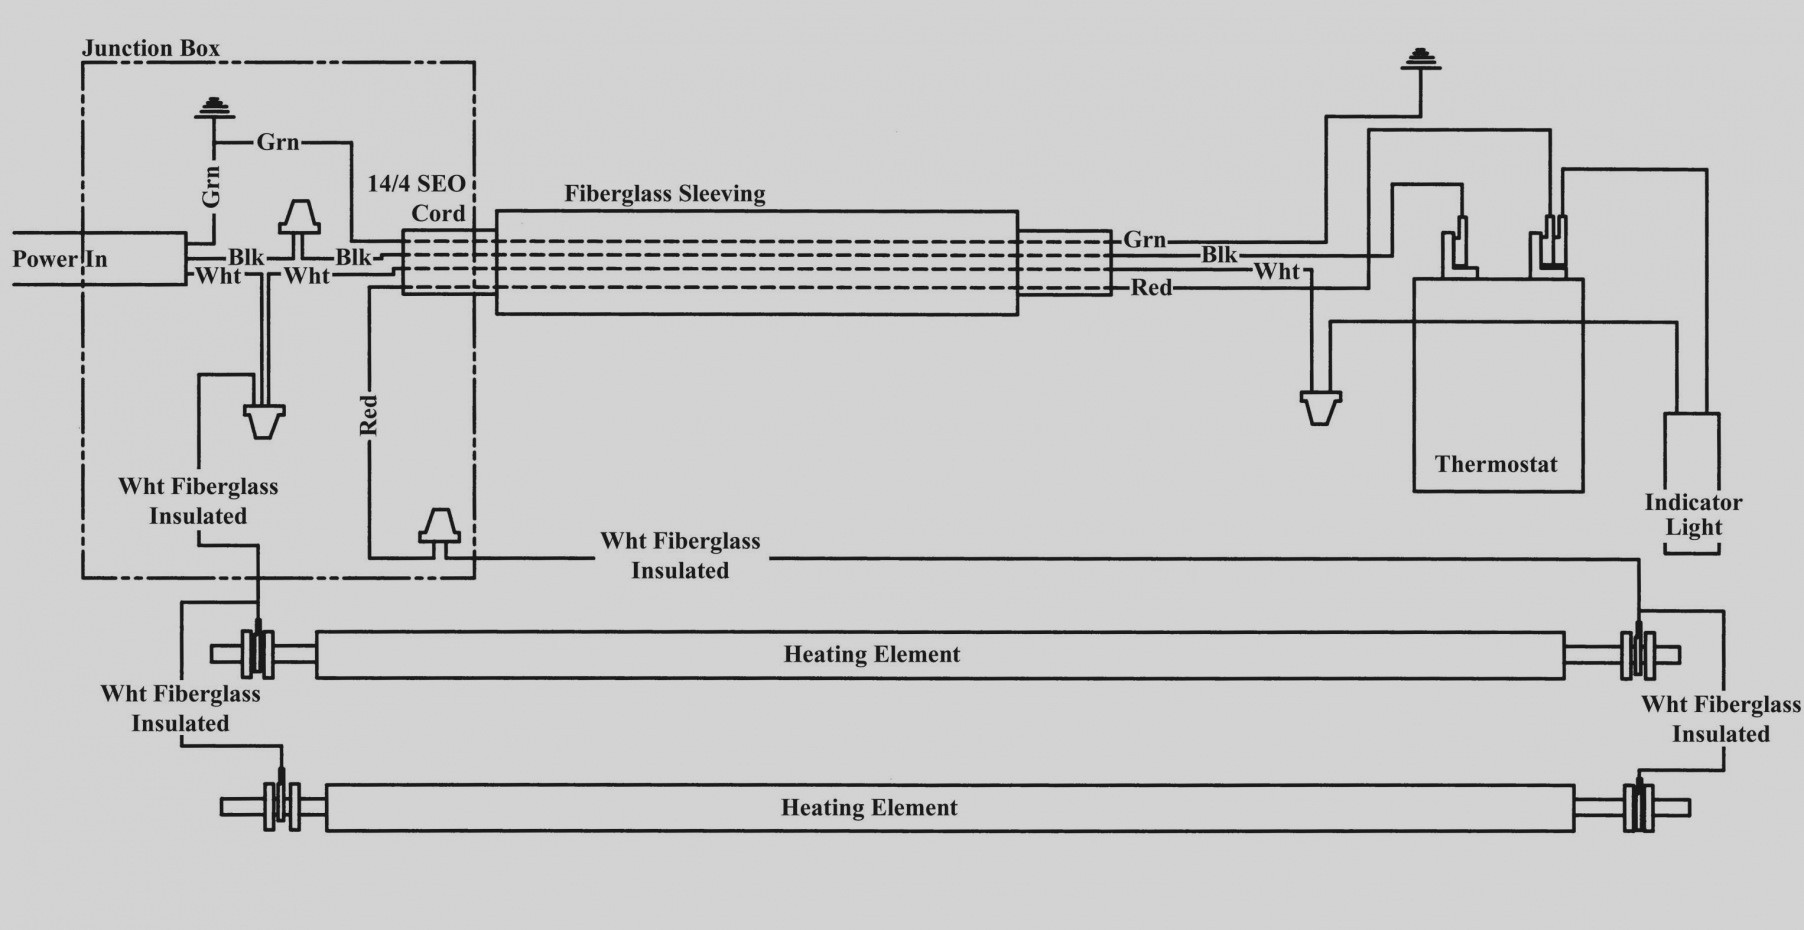 240 volt heater wiring diagram unique wiring diagram image wonderful baseboard heater wiring diagram beautiful 240 volt asfbconference2016 Image collections